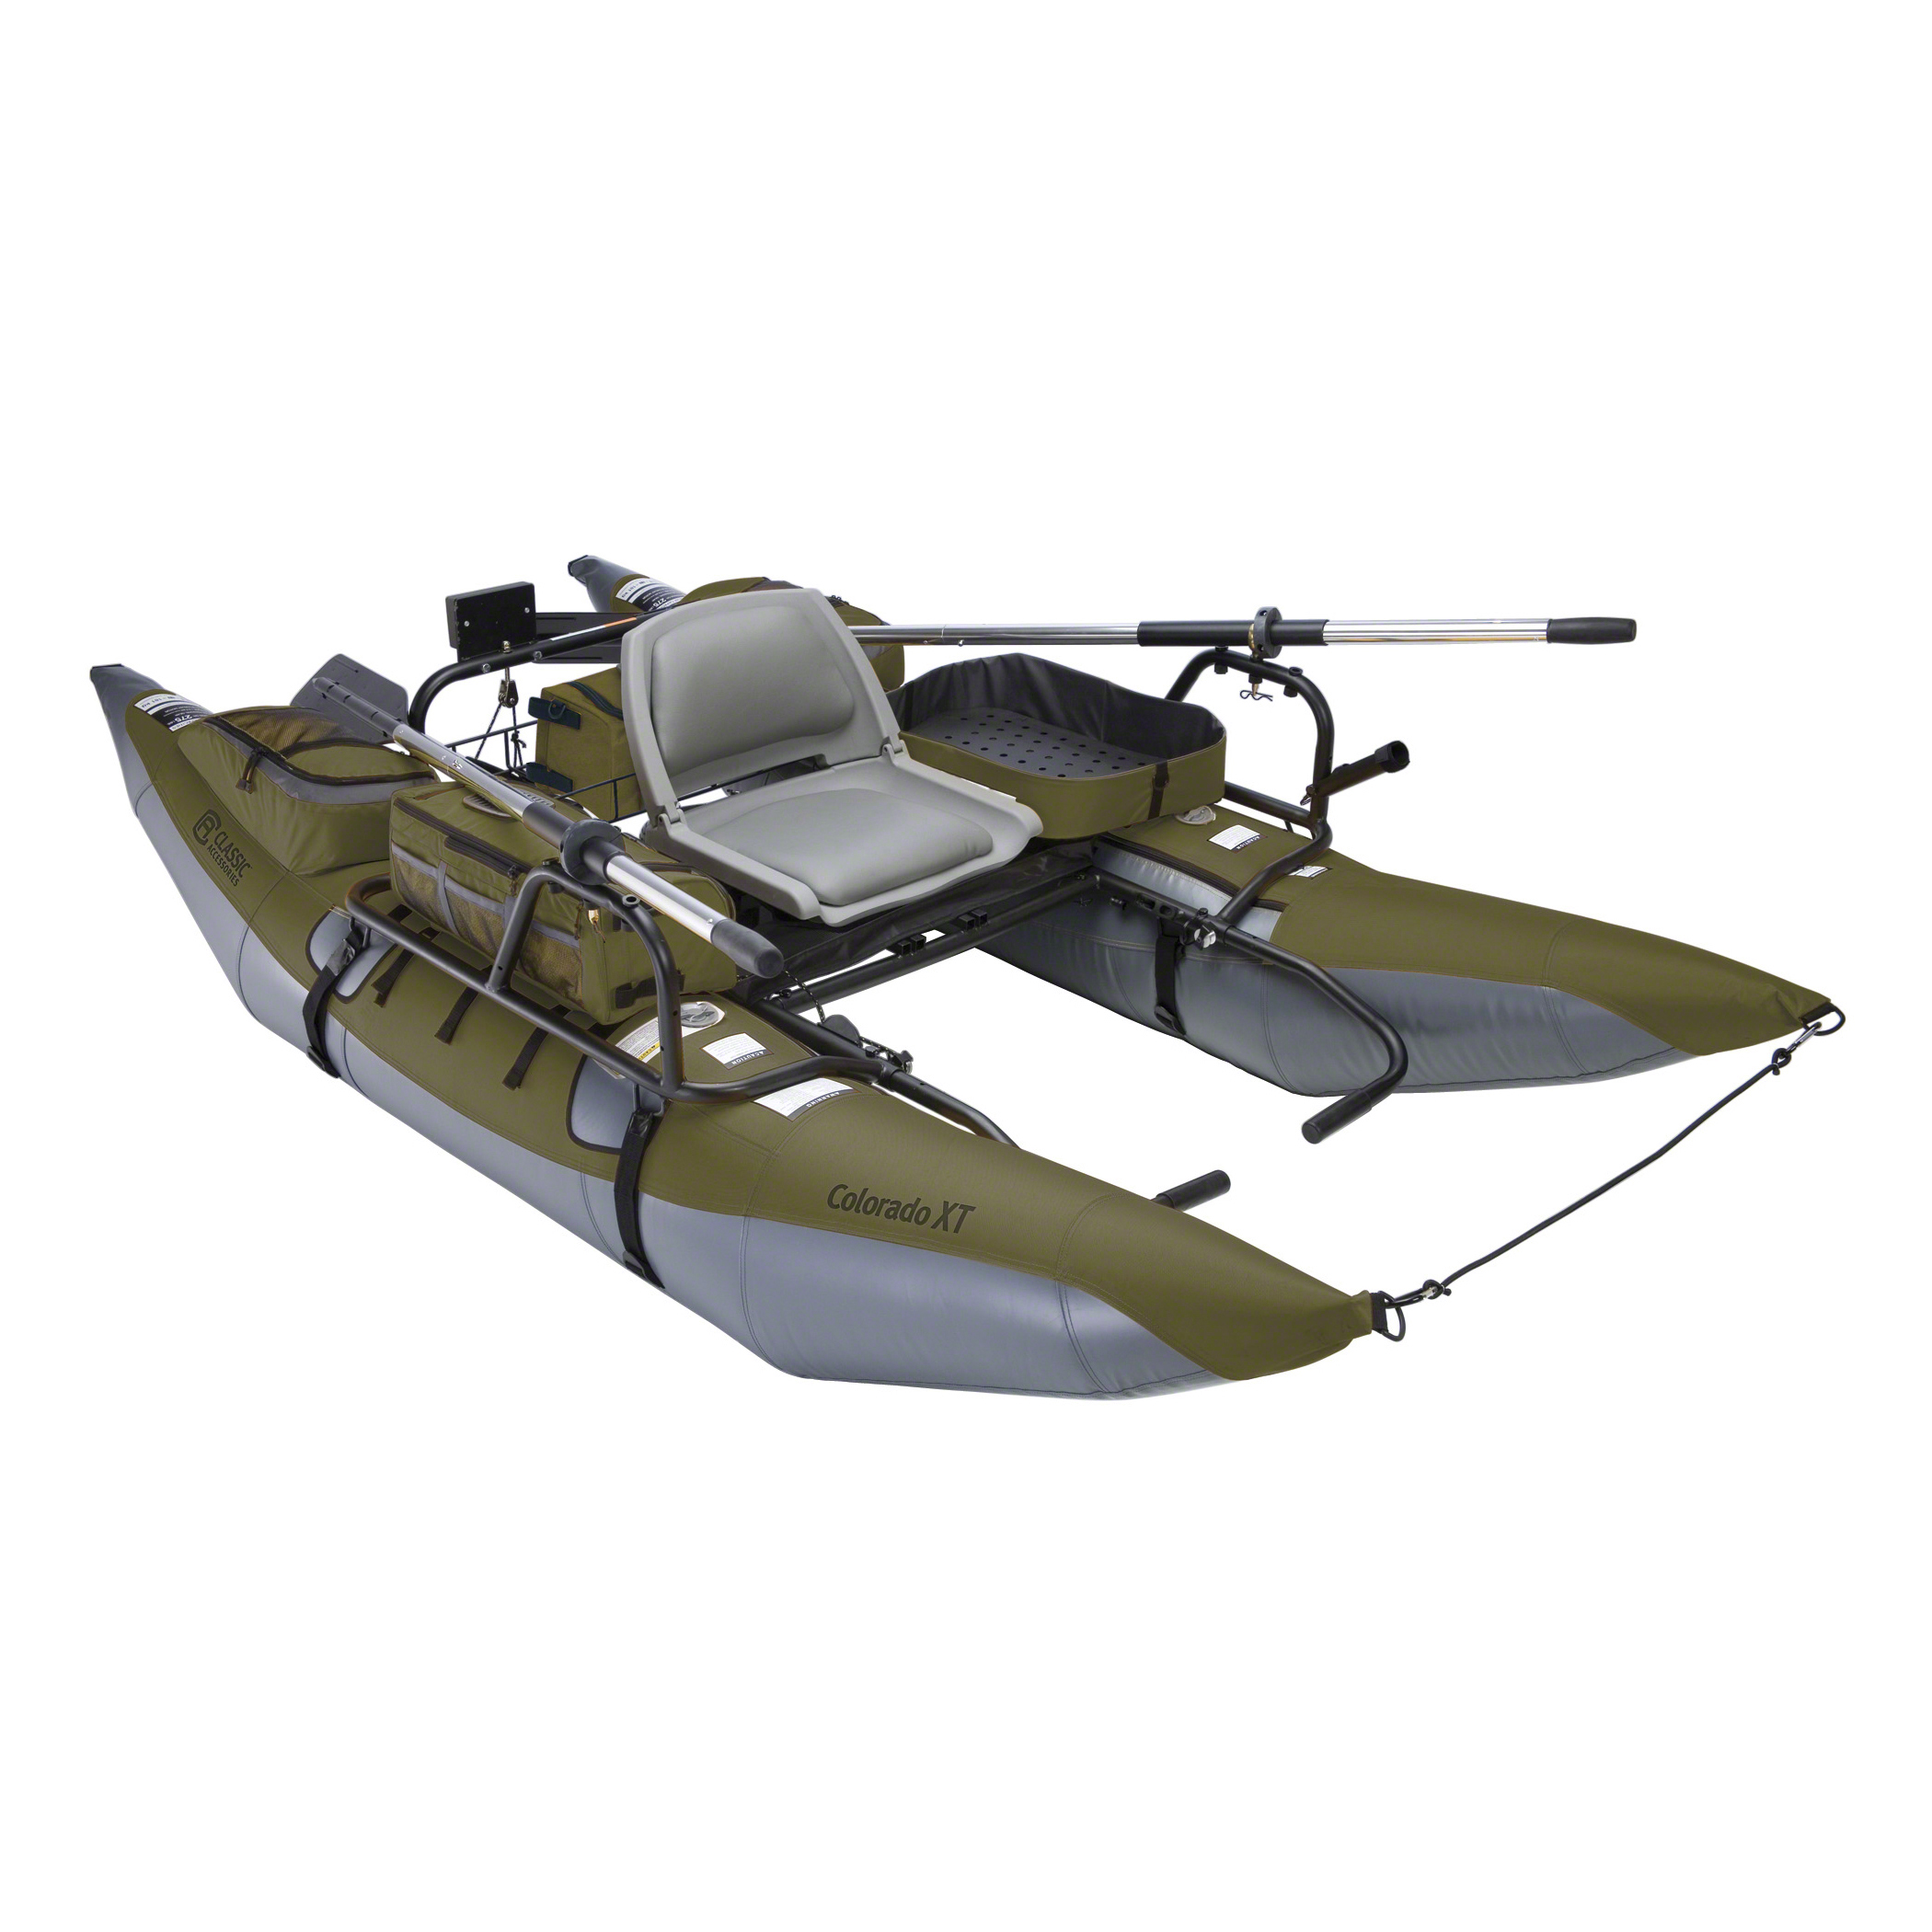 Classic Accessories Colorado XT Pontoon Fishing Boat, Sage/Grey